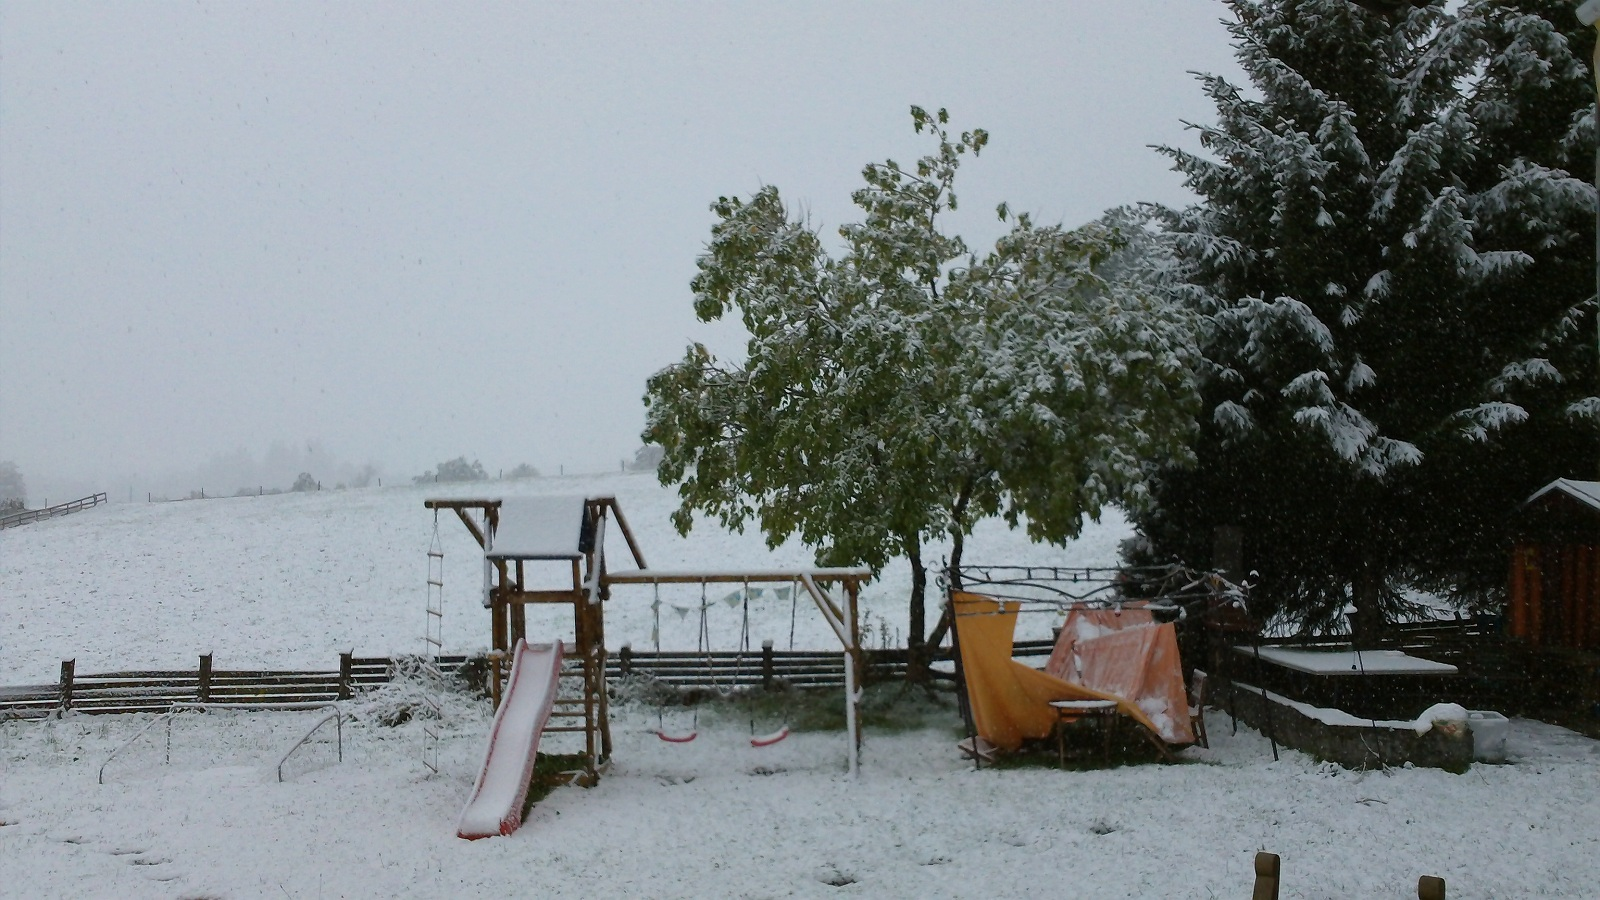 Winter Holiday, Radstadt, Austria, Snowing day